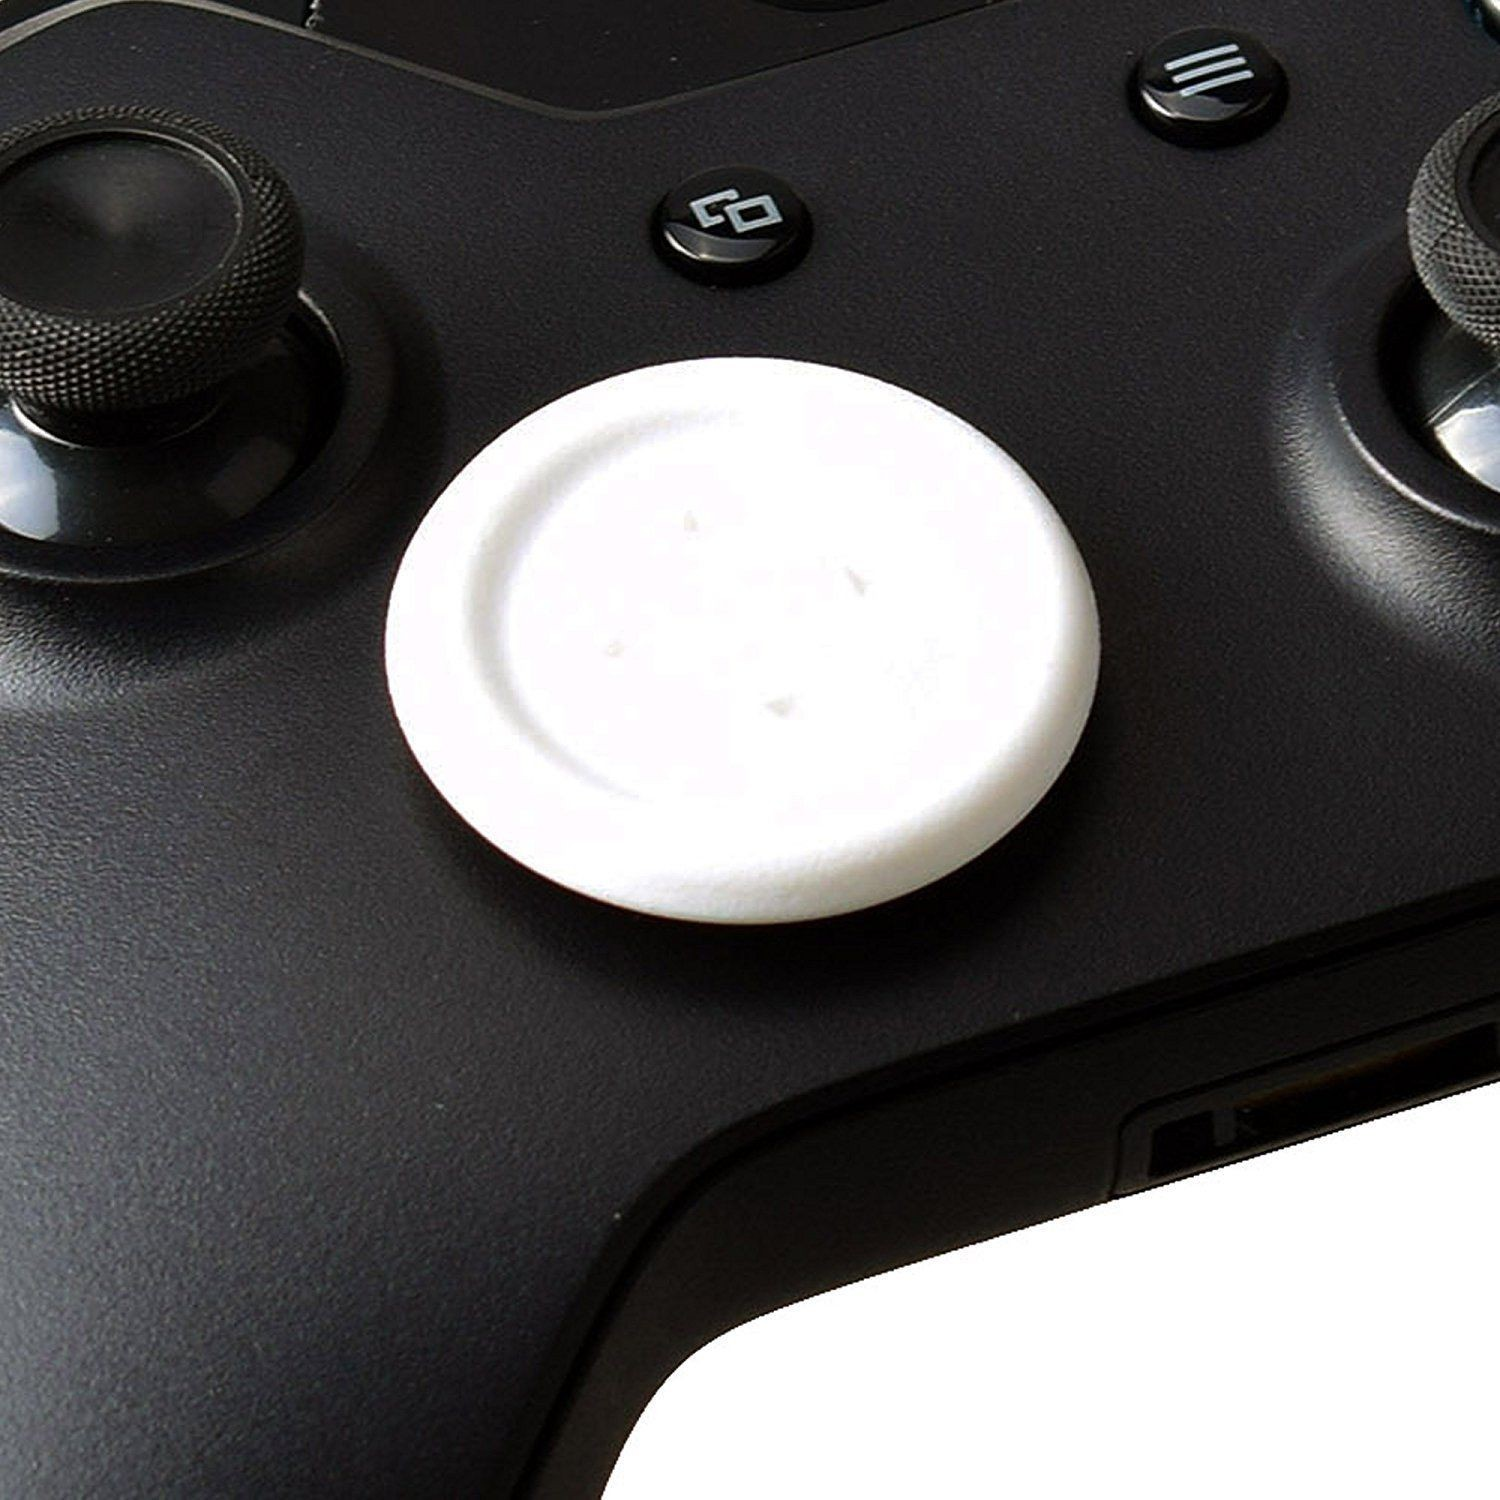 Xbox one Controller stick D-pad Flat Directional joystick Button Cap for XboxOne (White)